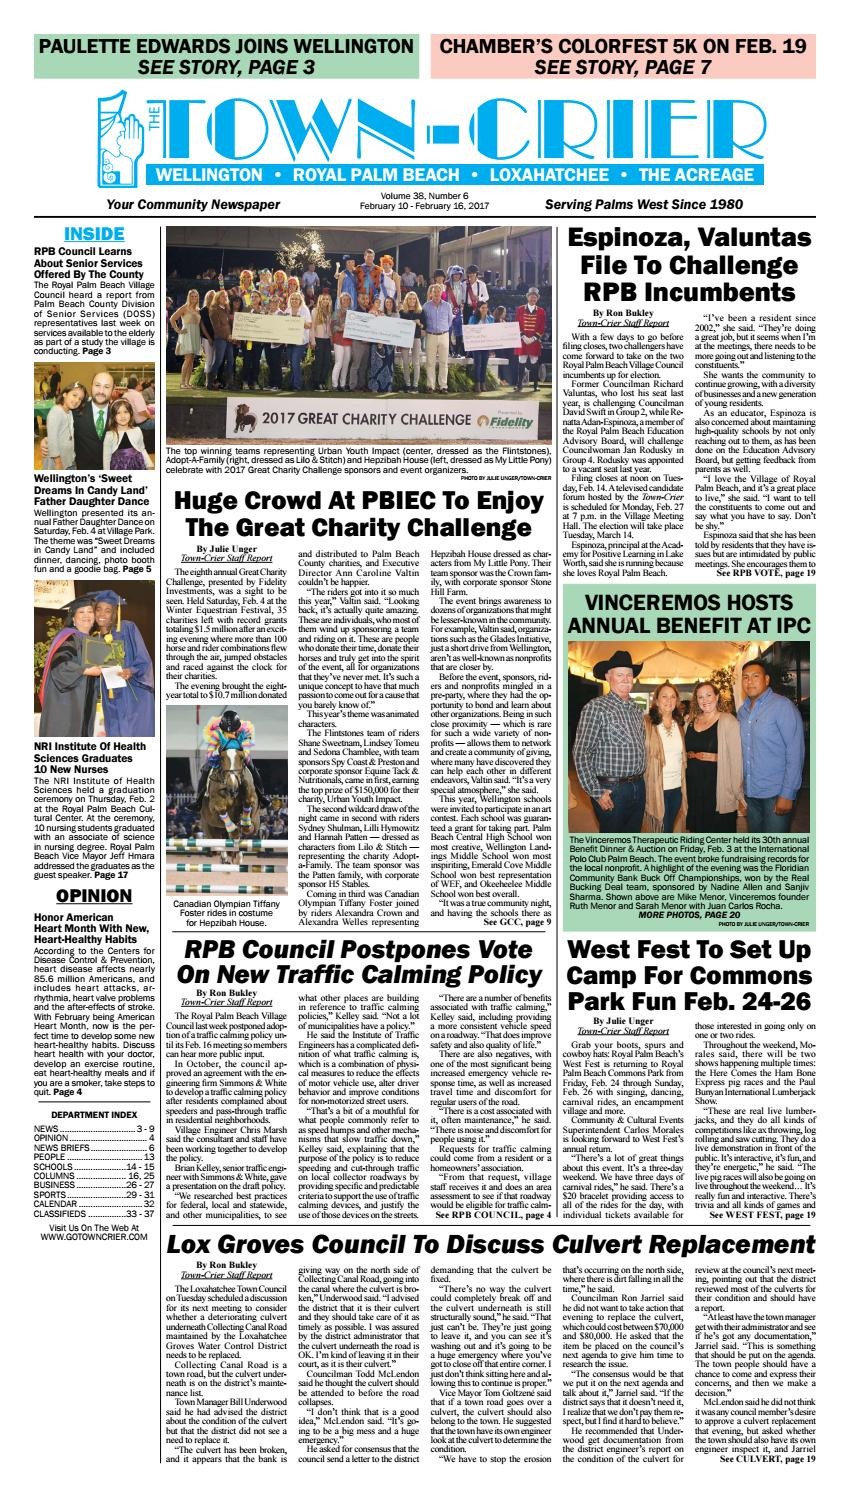 Town Crier Newspaper February 10 2017 By Wellington The Magazine LLC